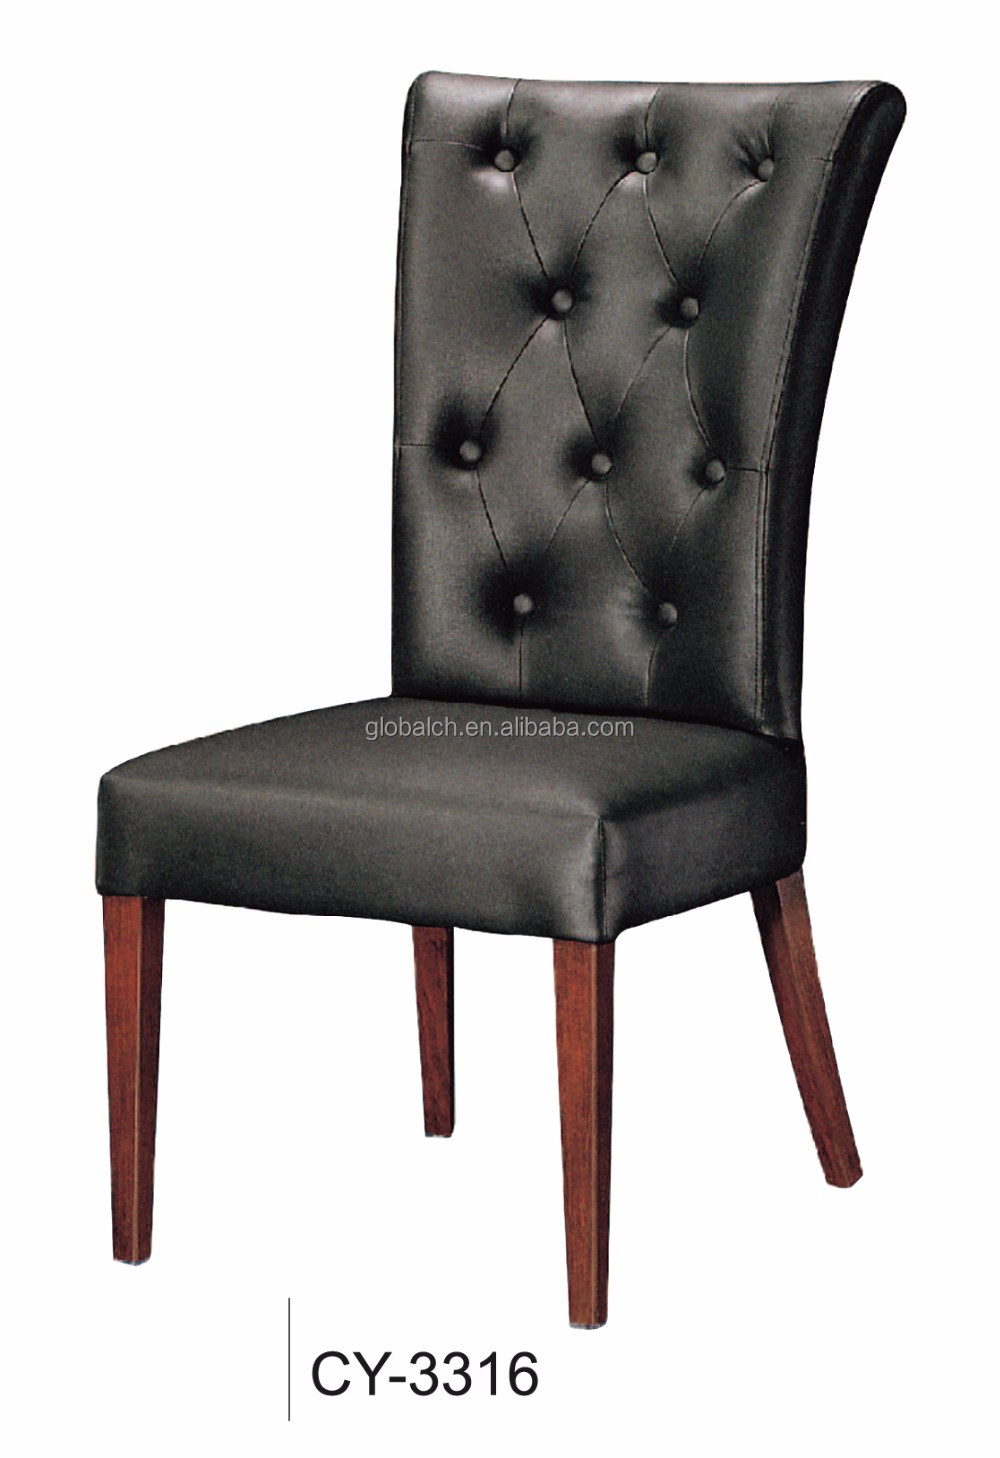 Imitate Wood Classy Long Back Metal Dining Chair